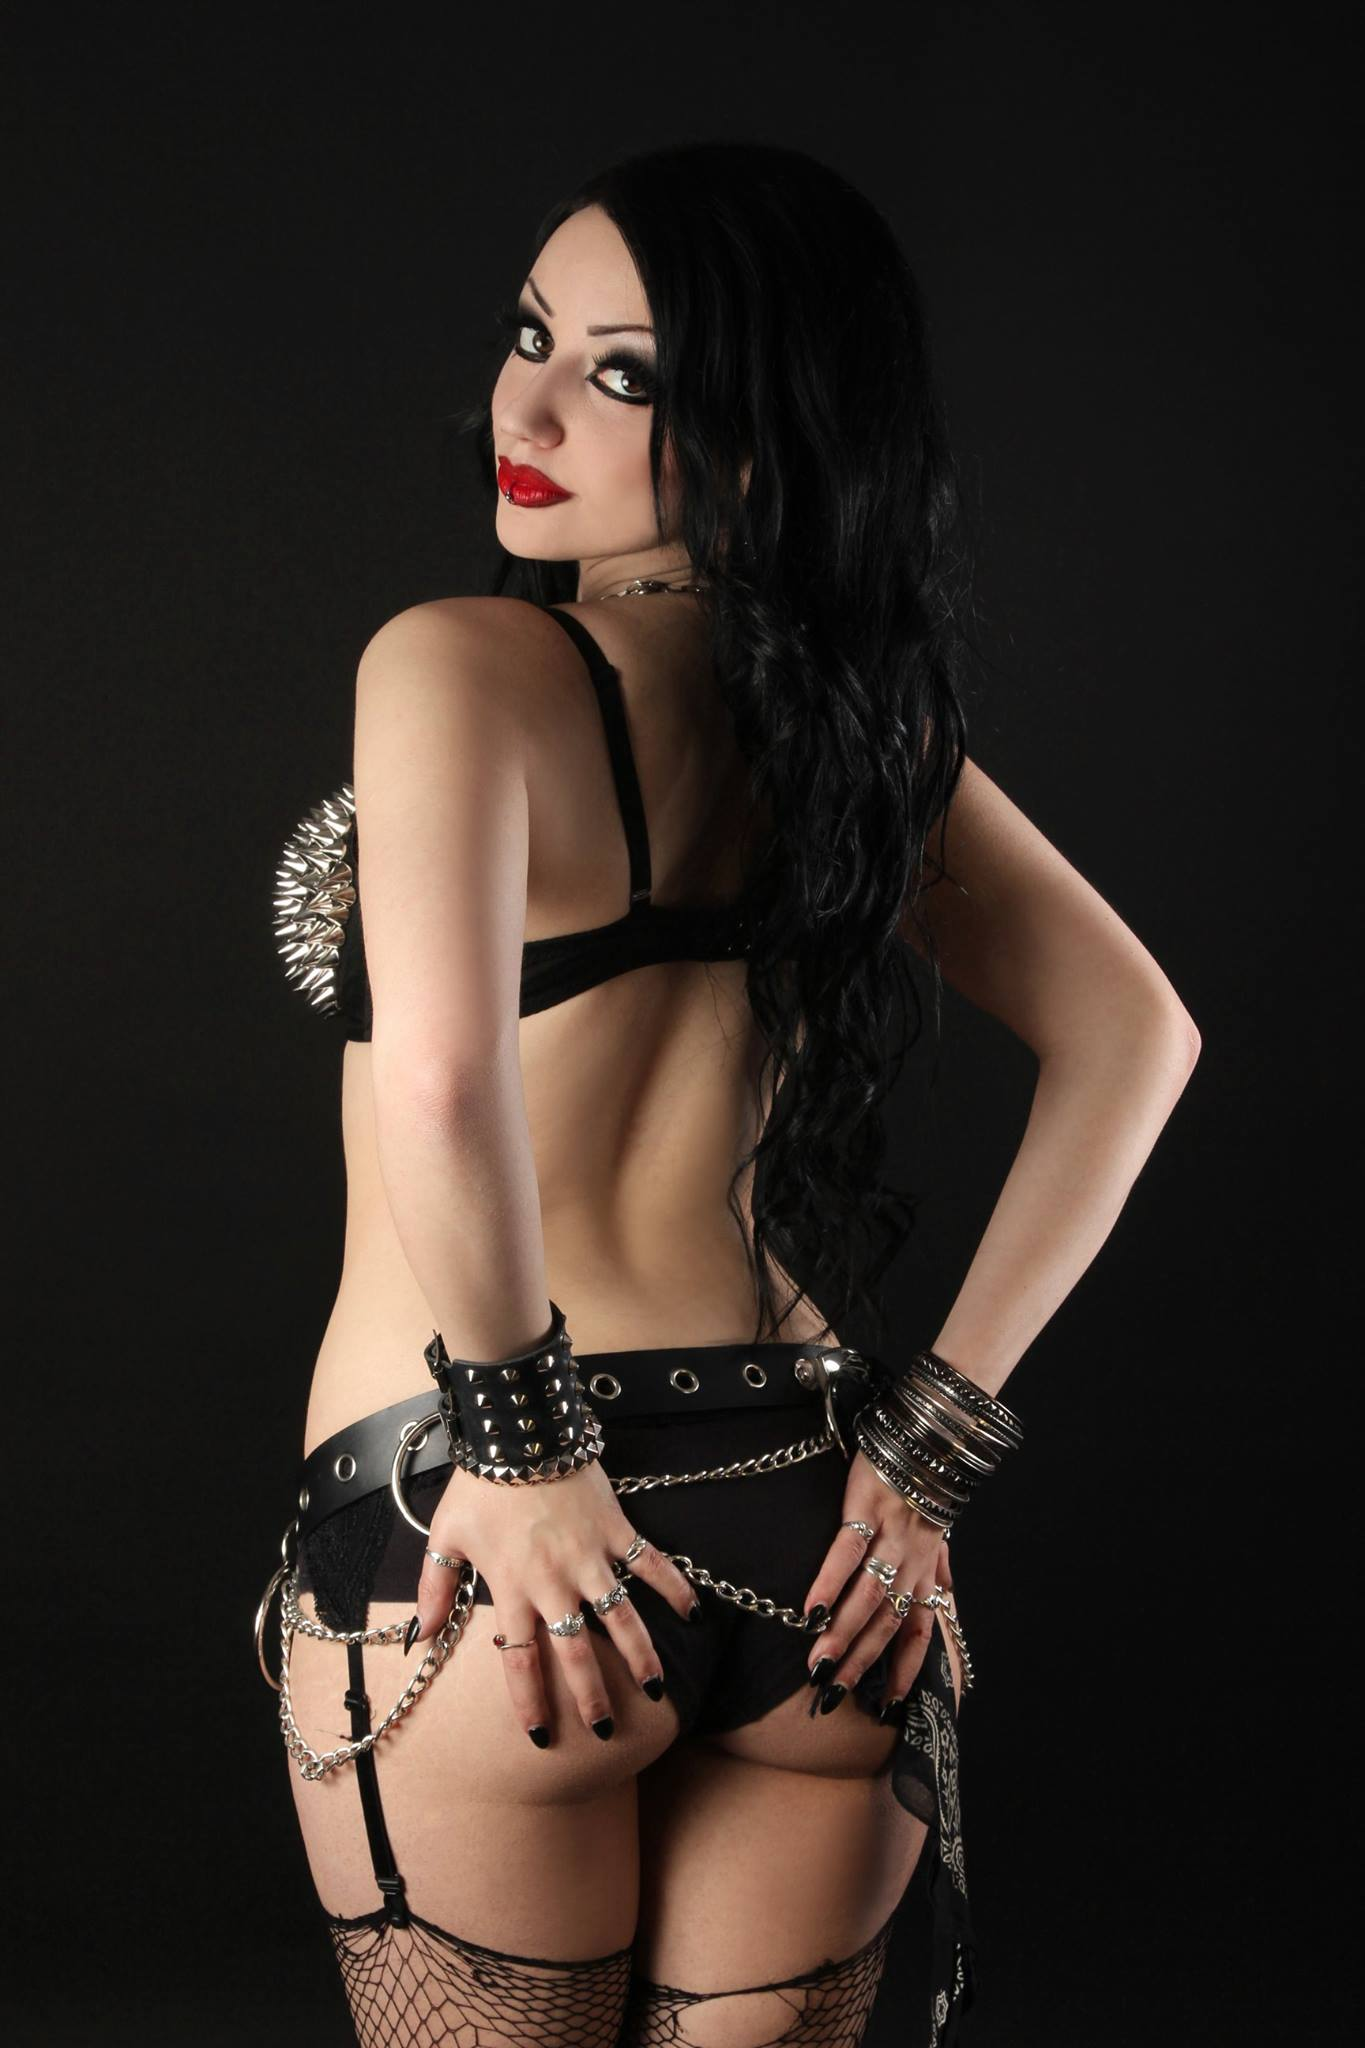 sexy-goth-chicks-naked-famous-people-nude-male